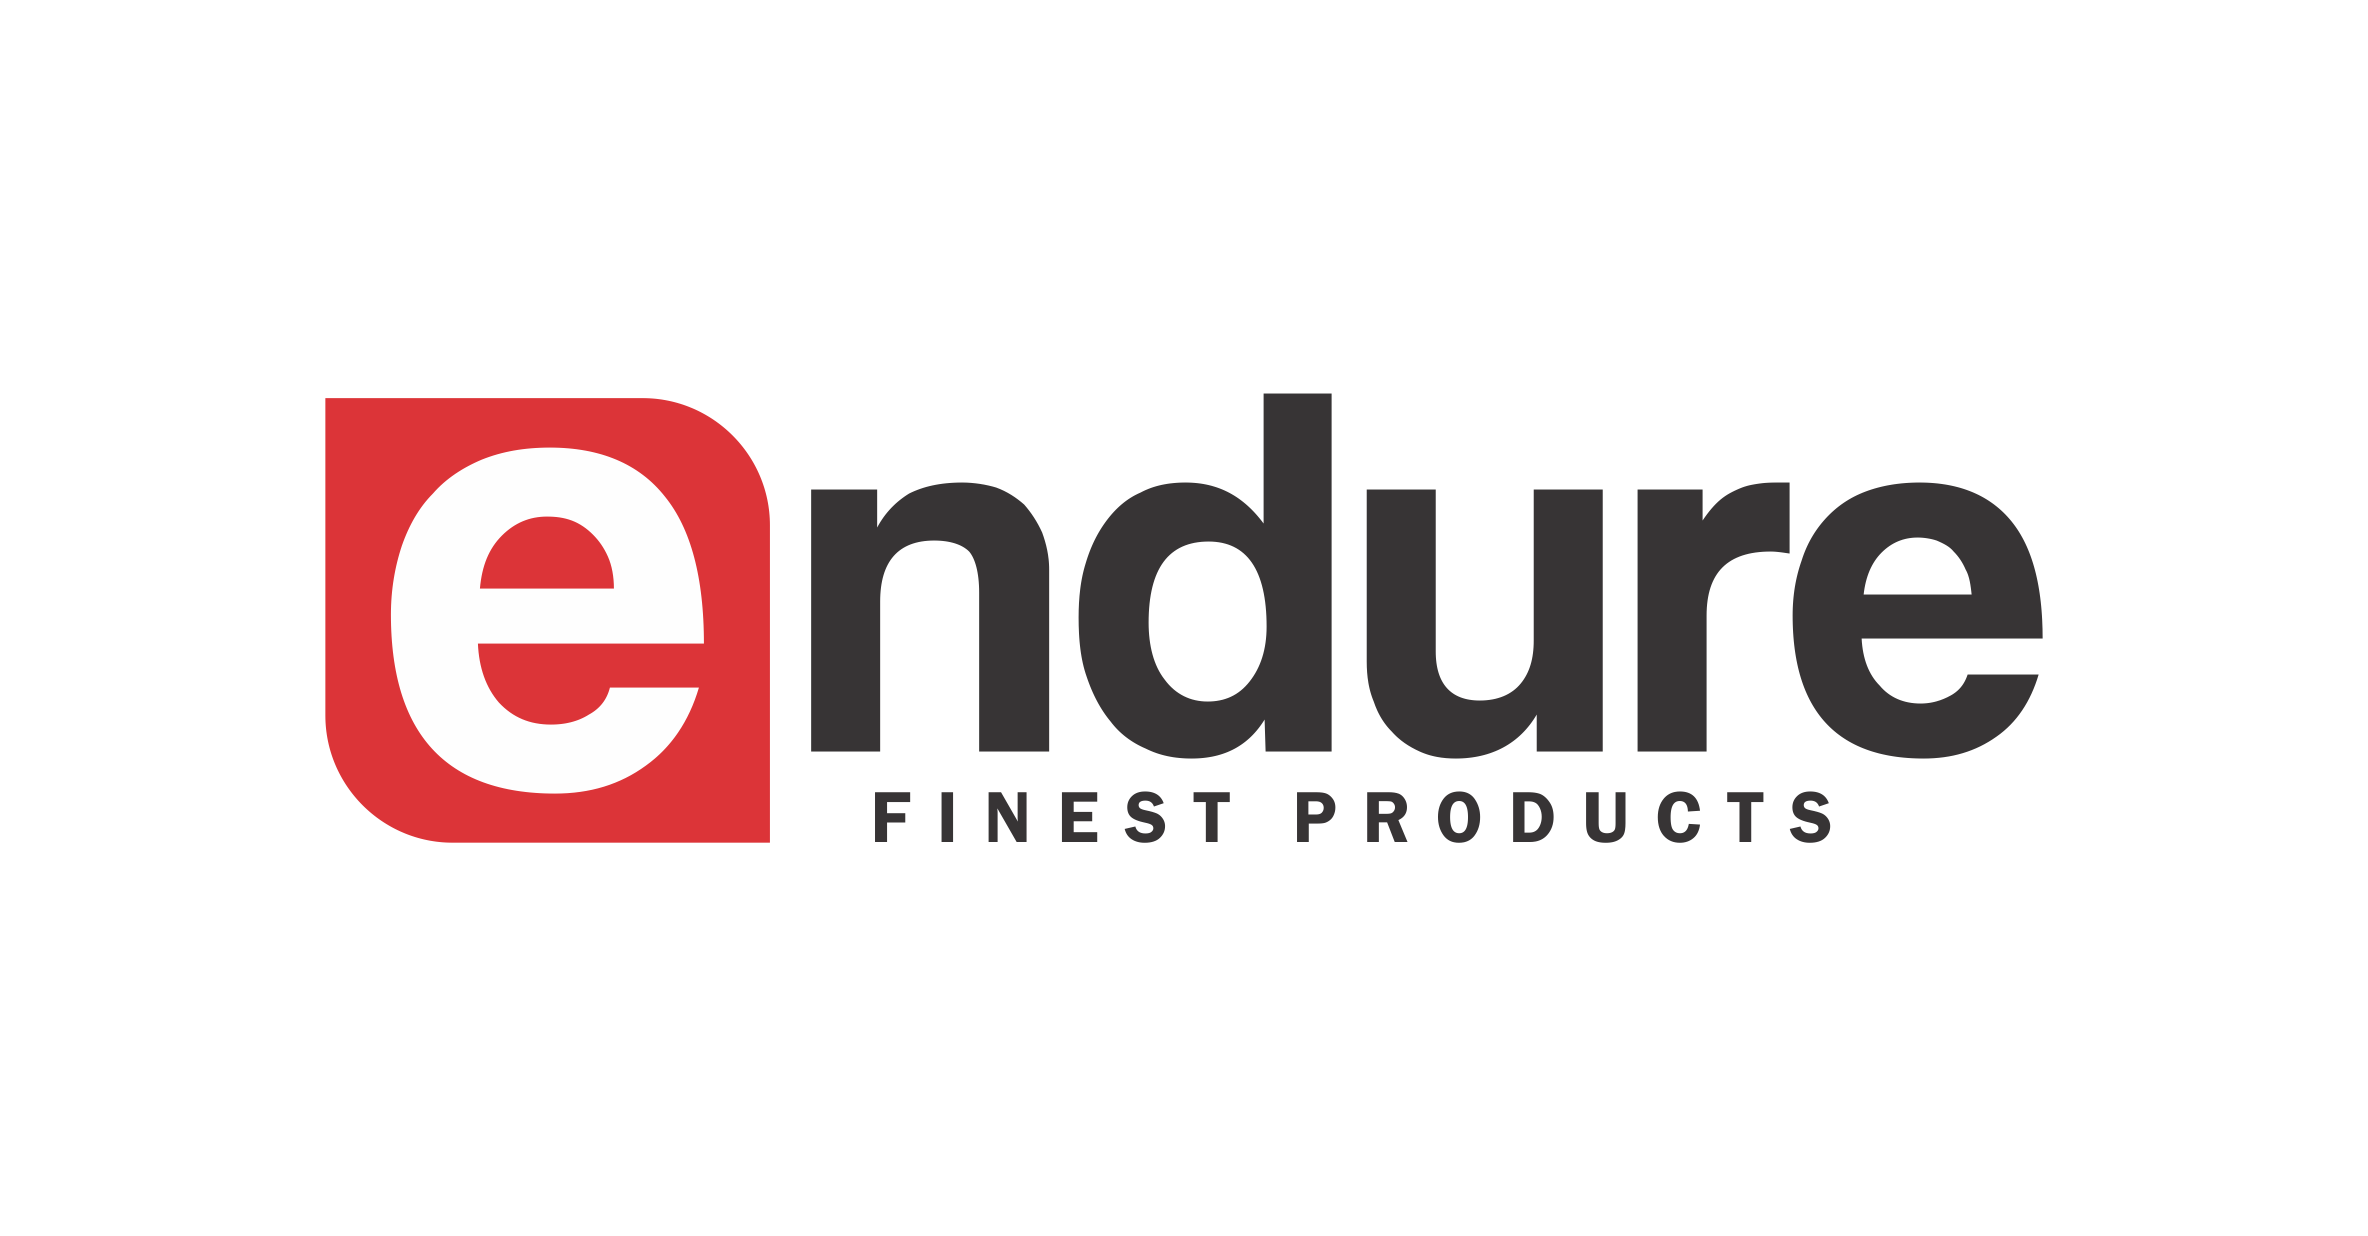 Endure Products needs a powerful new logo to draw customers